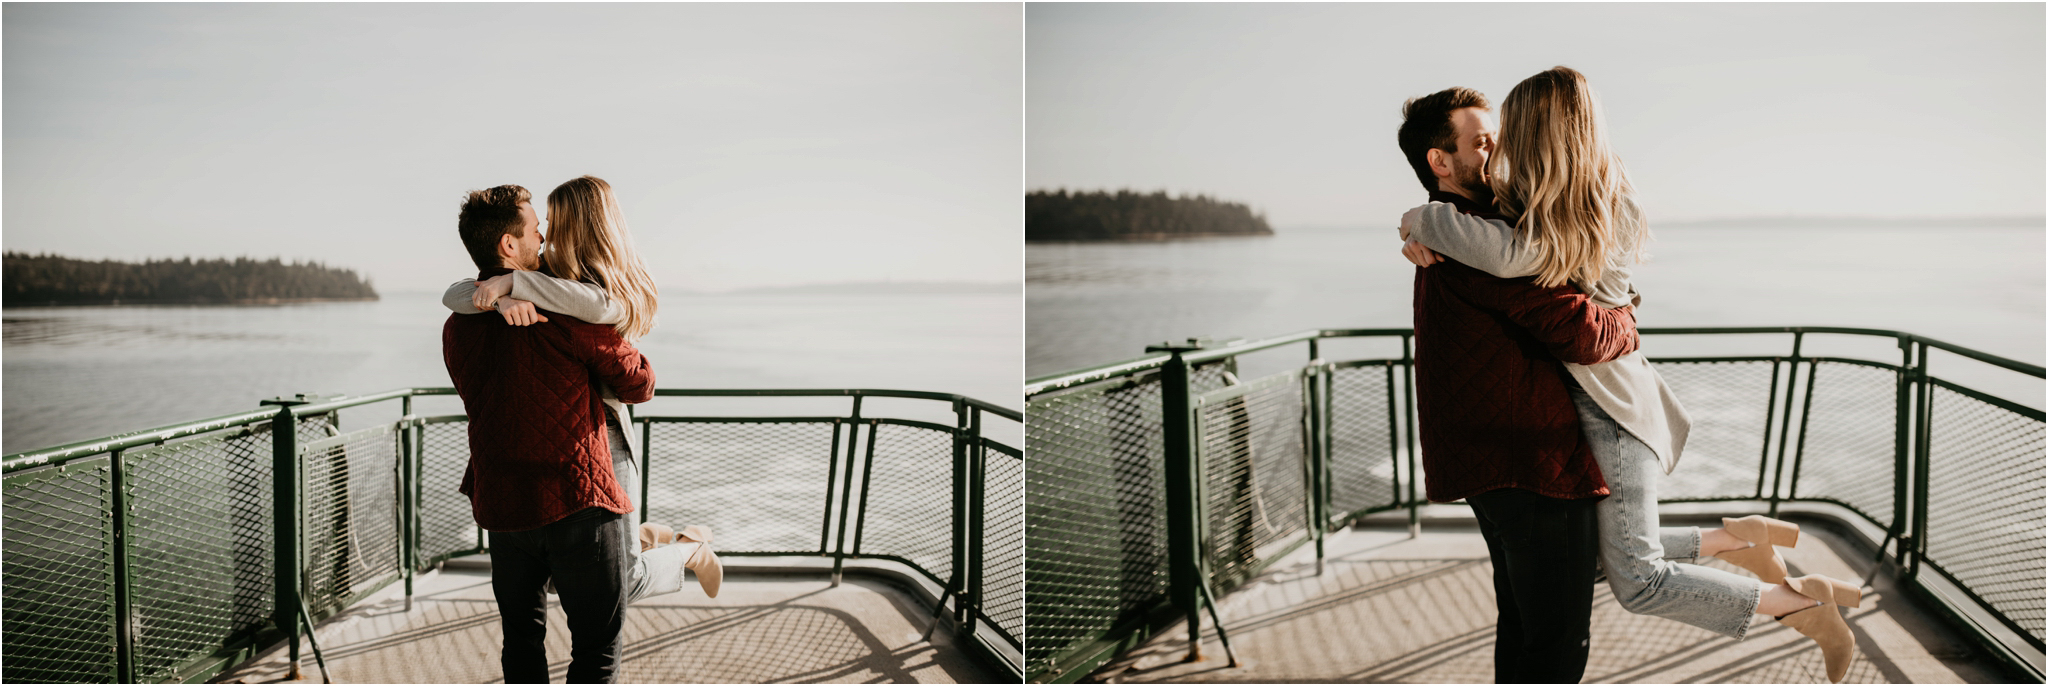 rile-and-ryan-fauntleroy-ferry-vashon-island-seattle-engagement-session-012.jpg